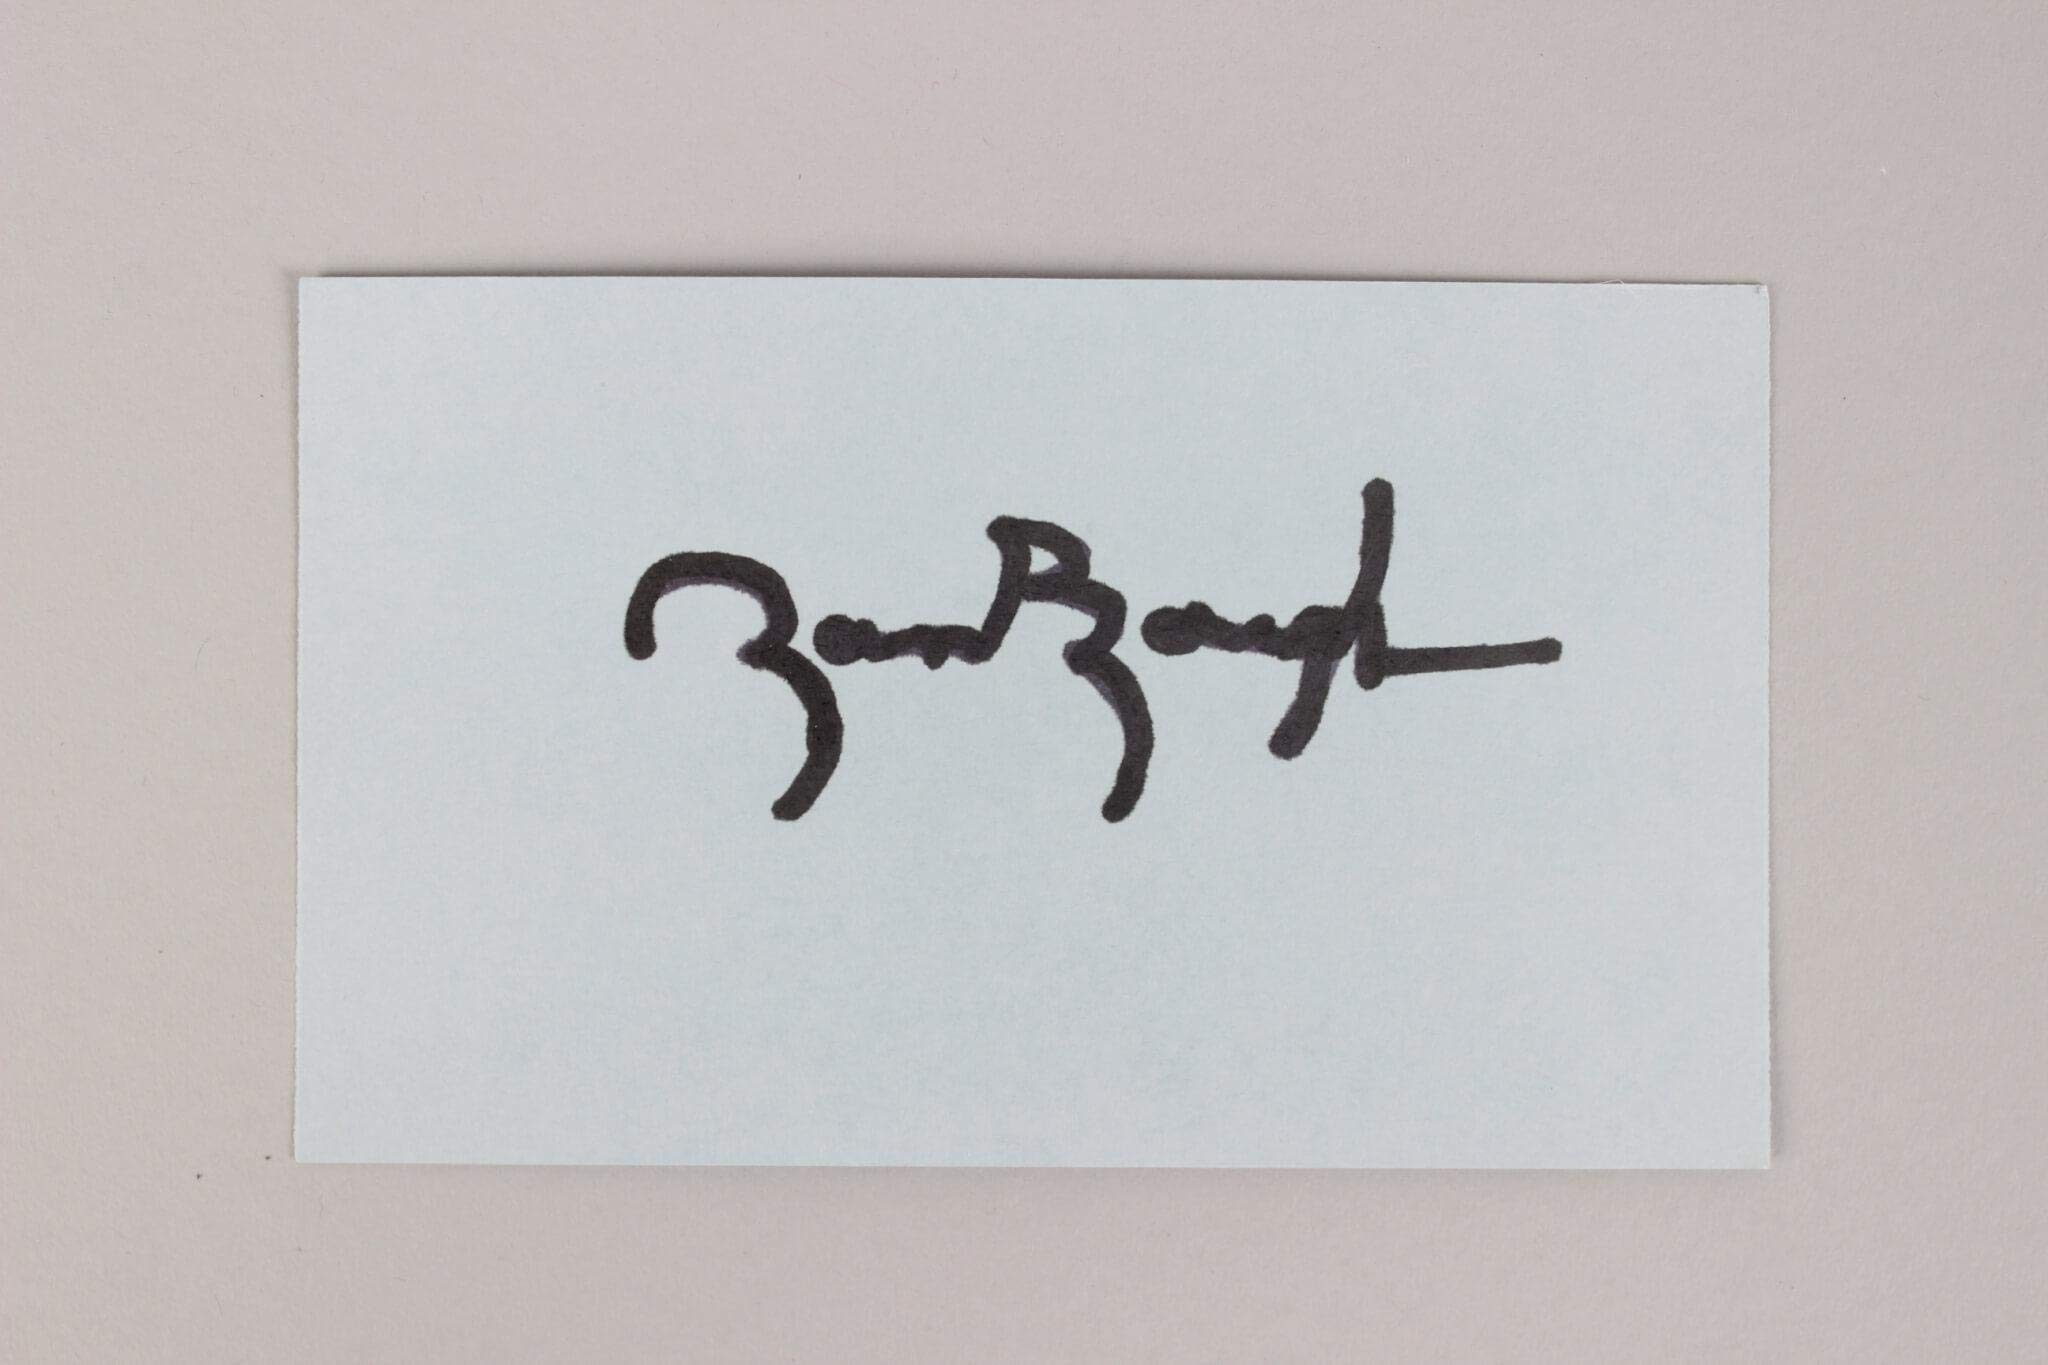 Sammy Baugh Signed Index Card Redskins COA JSA Certified NFL Cut Signatures